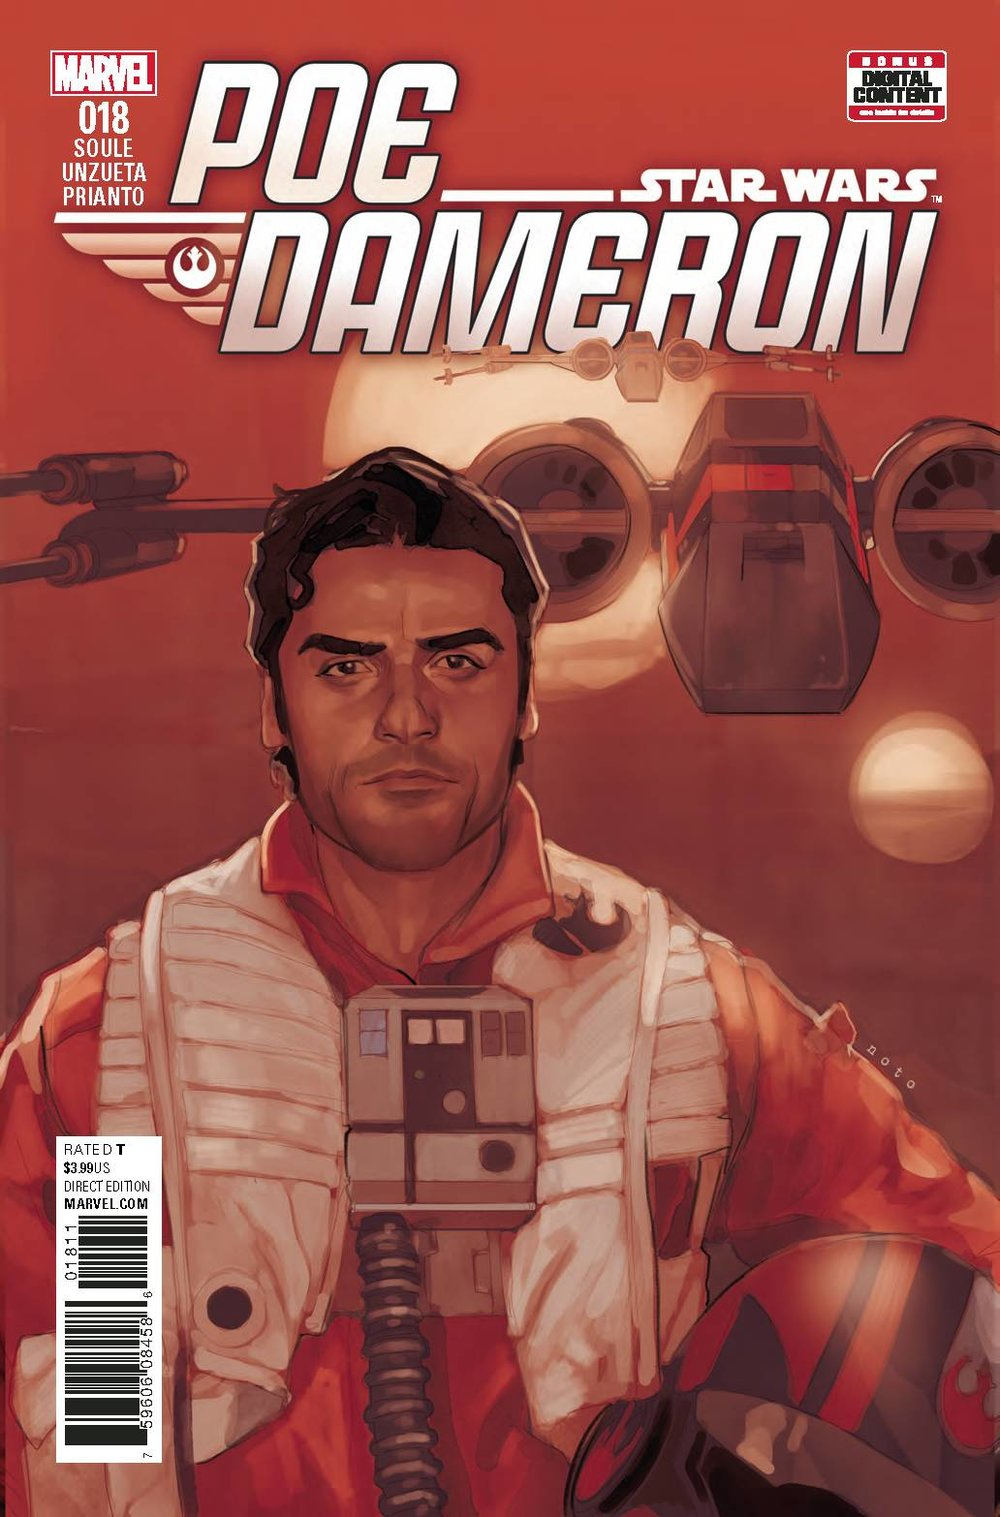 STAR WARS POE DAMERON 18.jpg